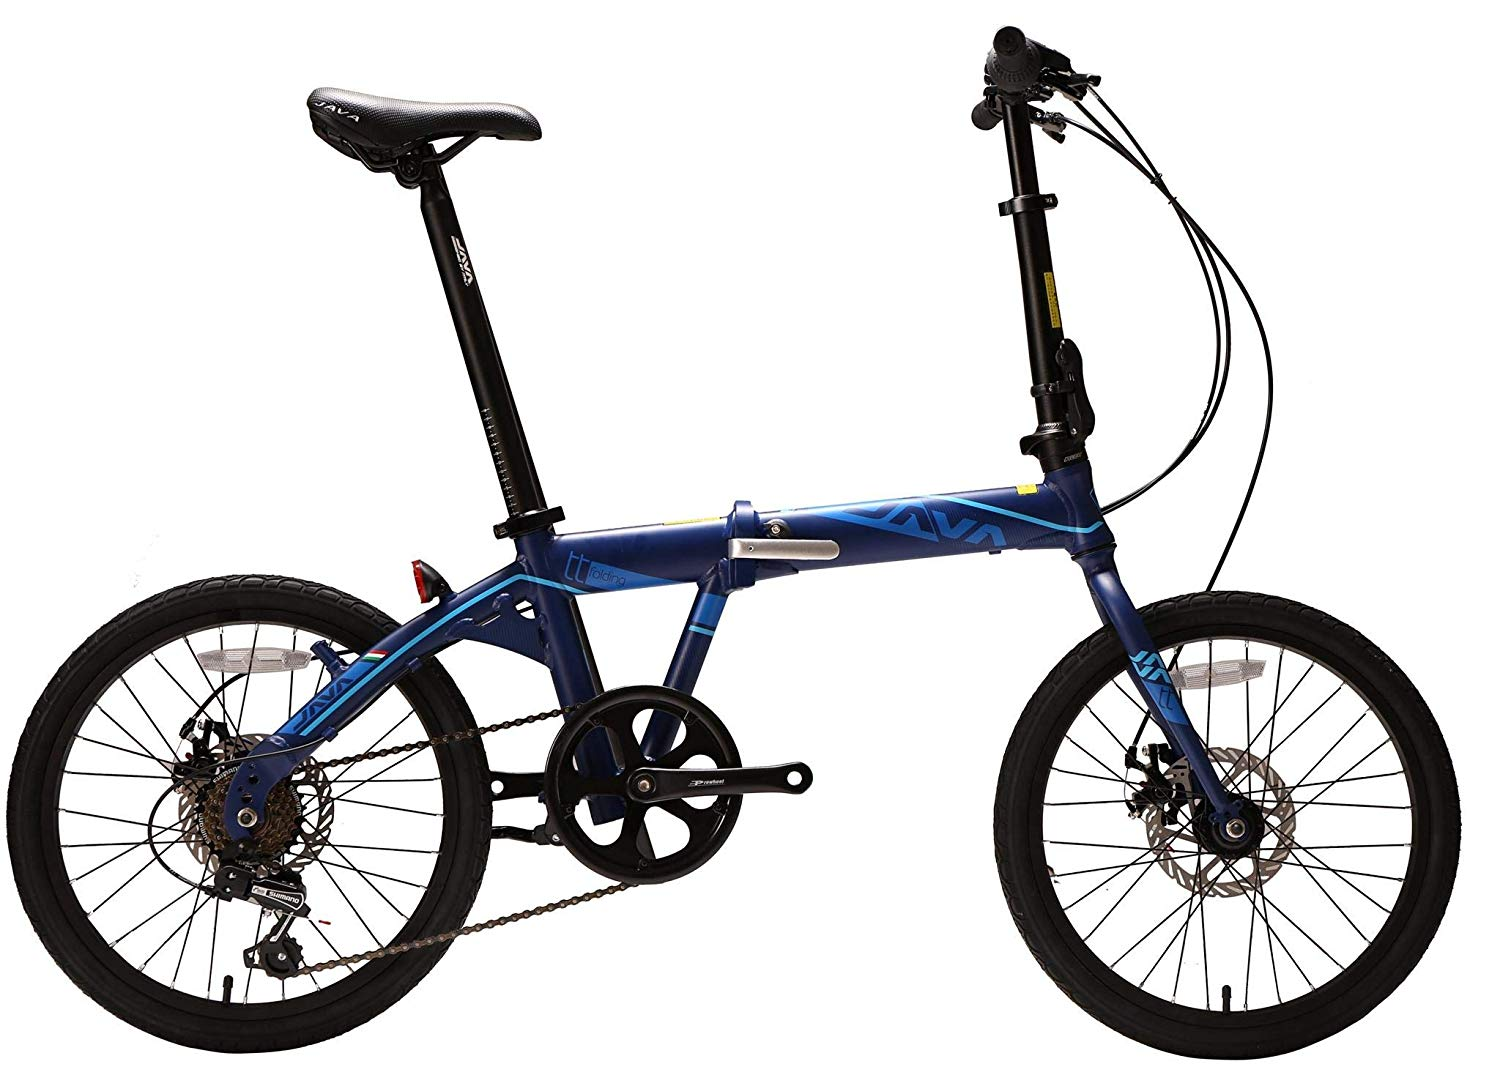 JAVA TT7S Foldable Bicycle 20-Inch